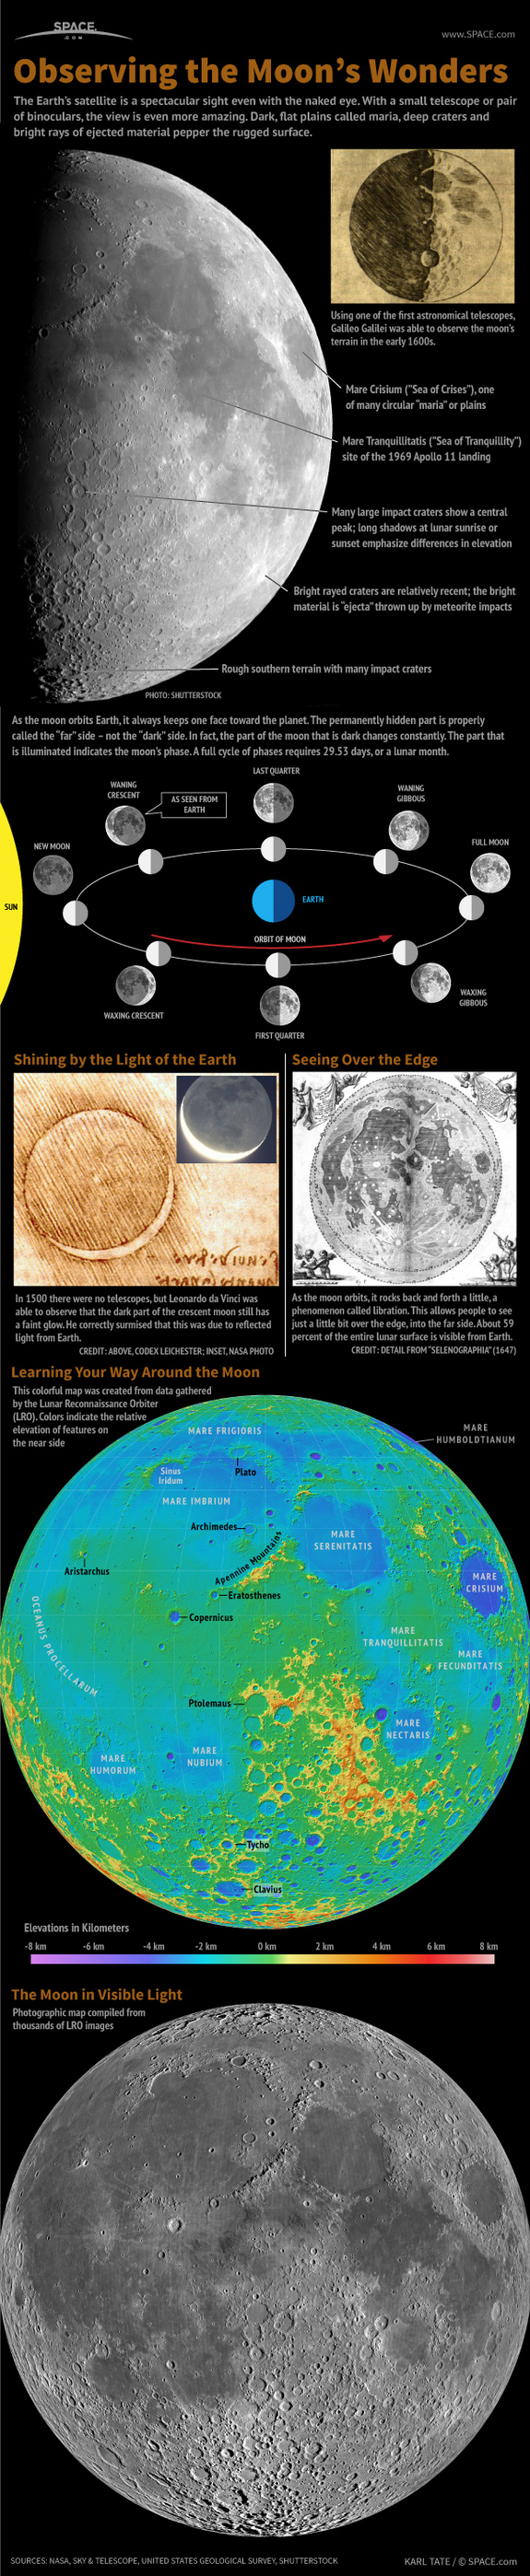 Find out how to spot craters and